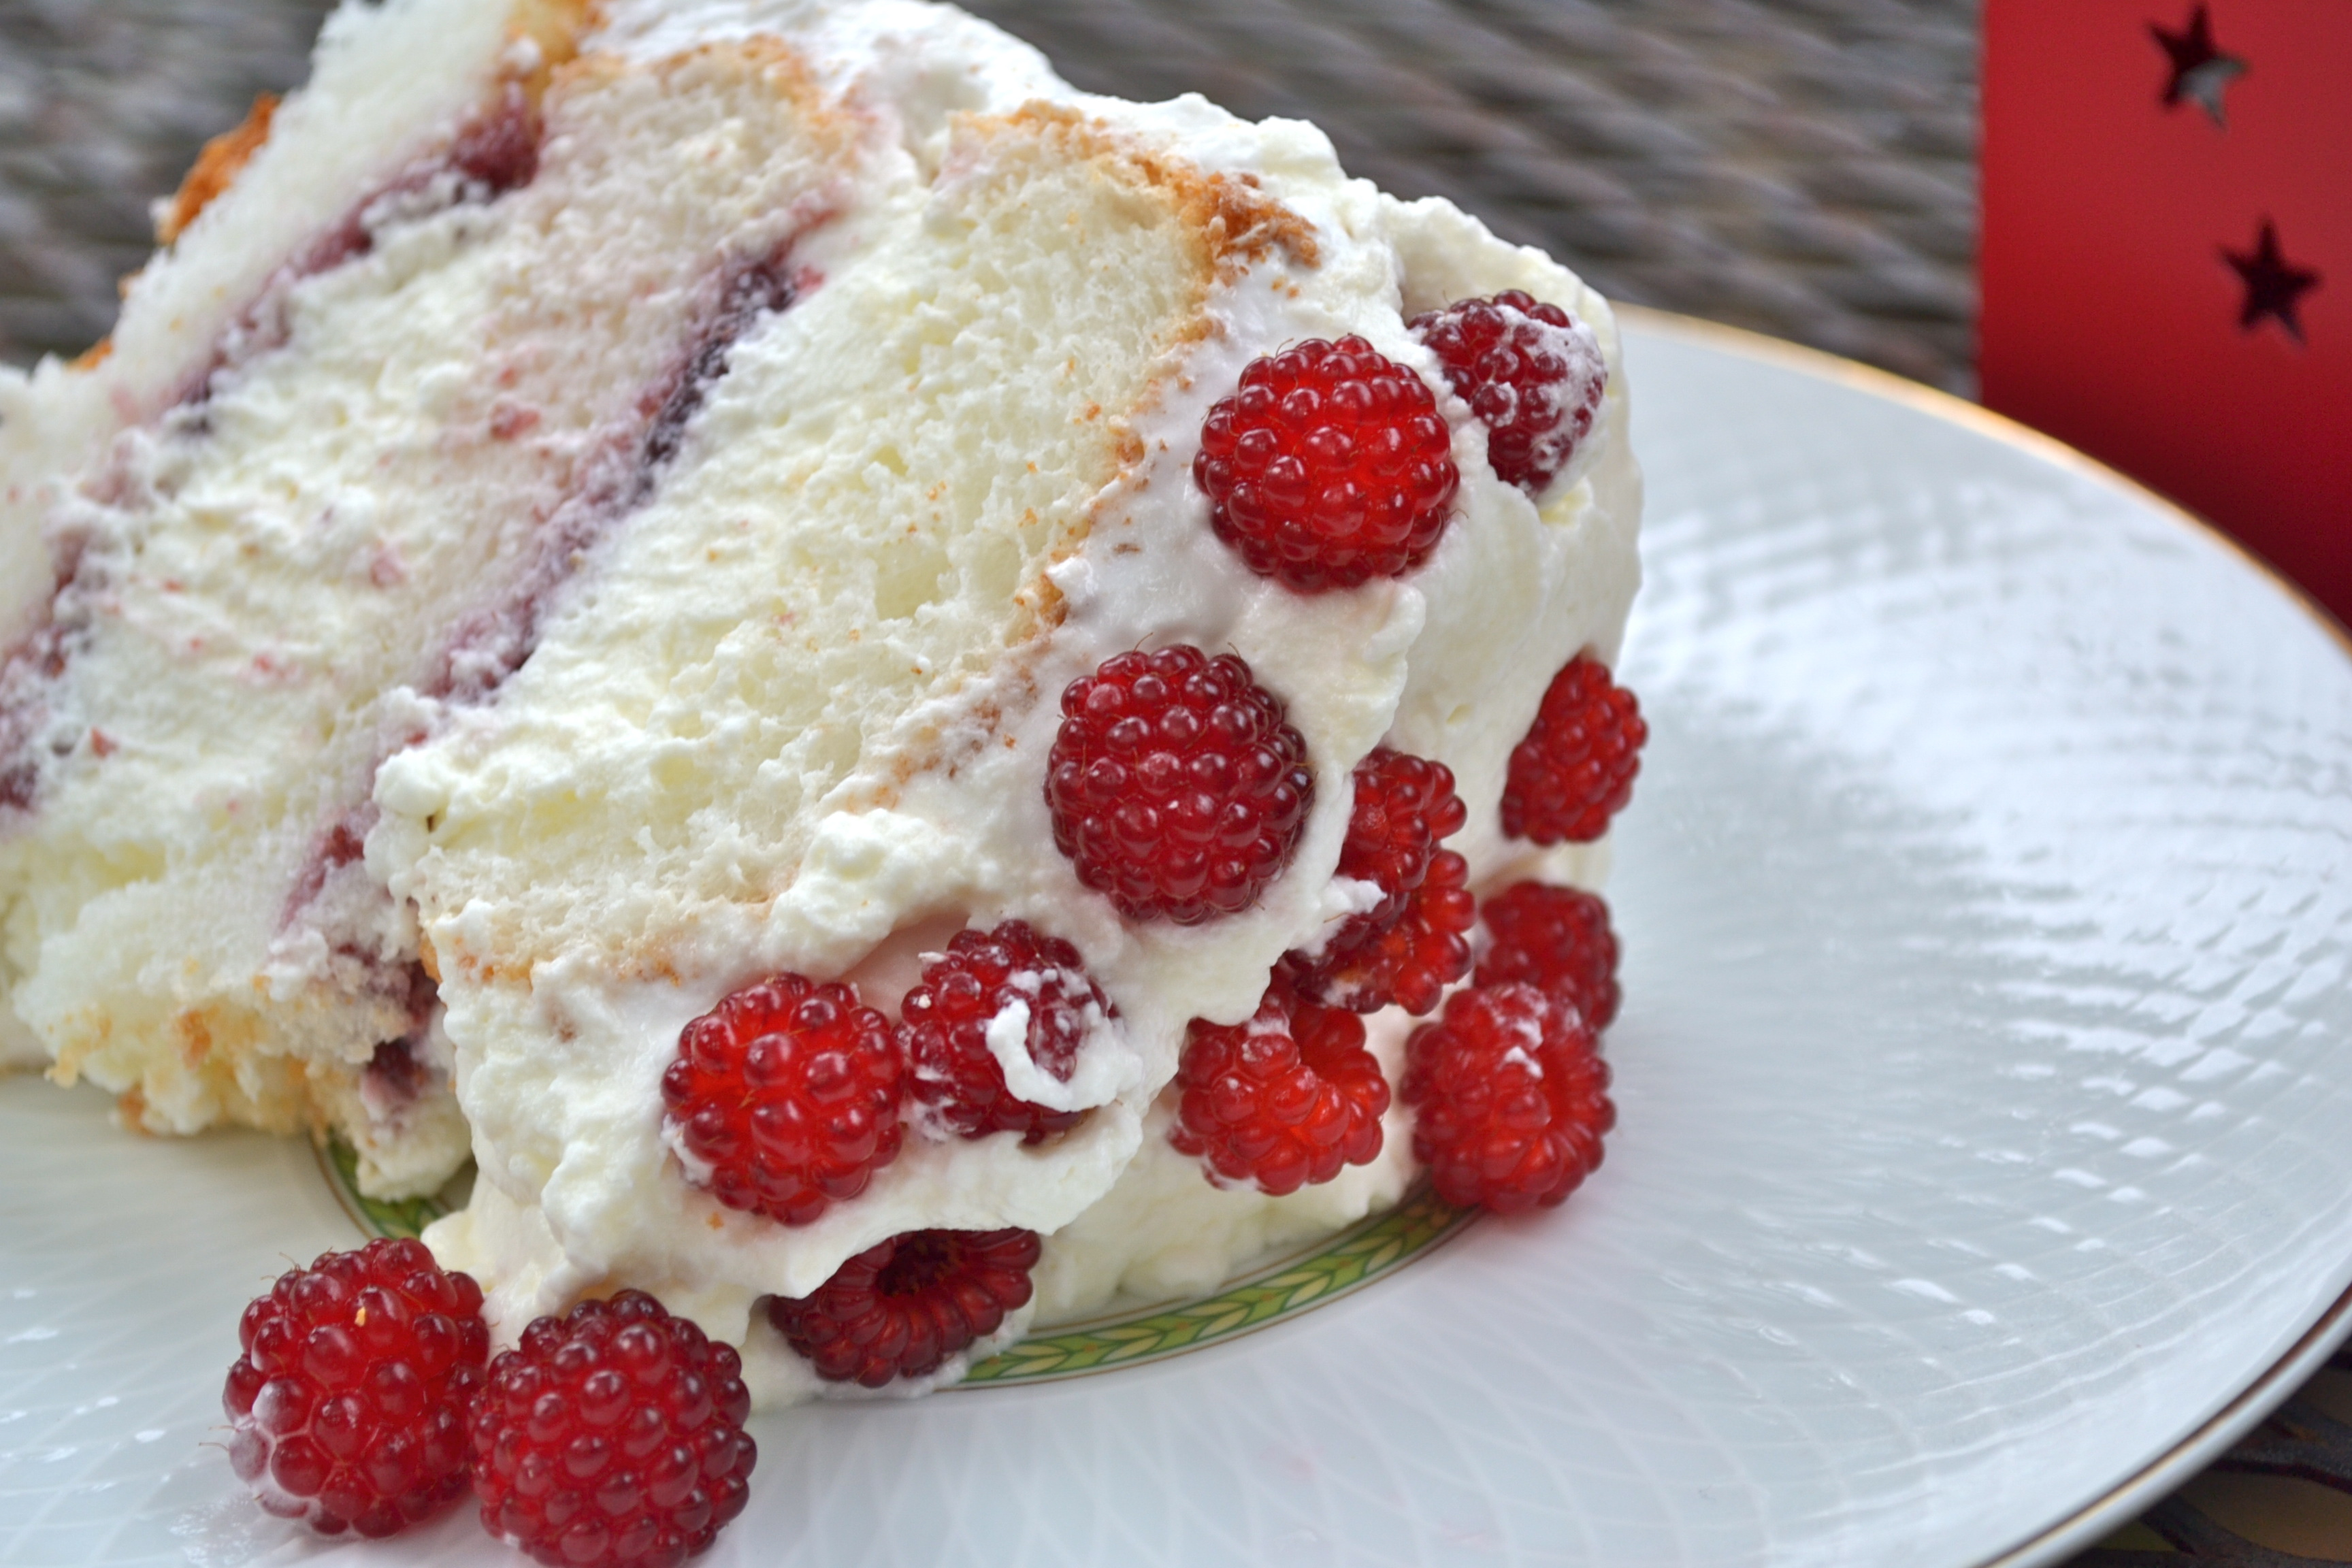 Raspberry Cake Recipe From Scratch